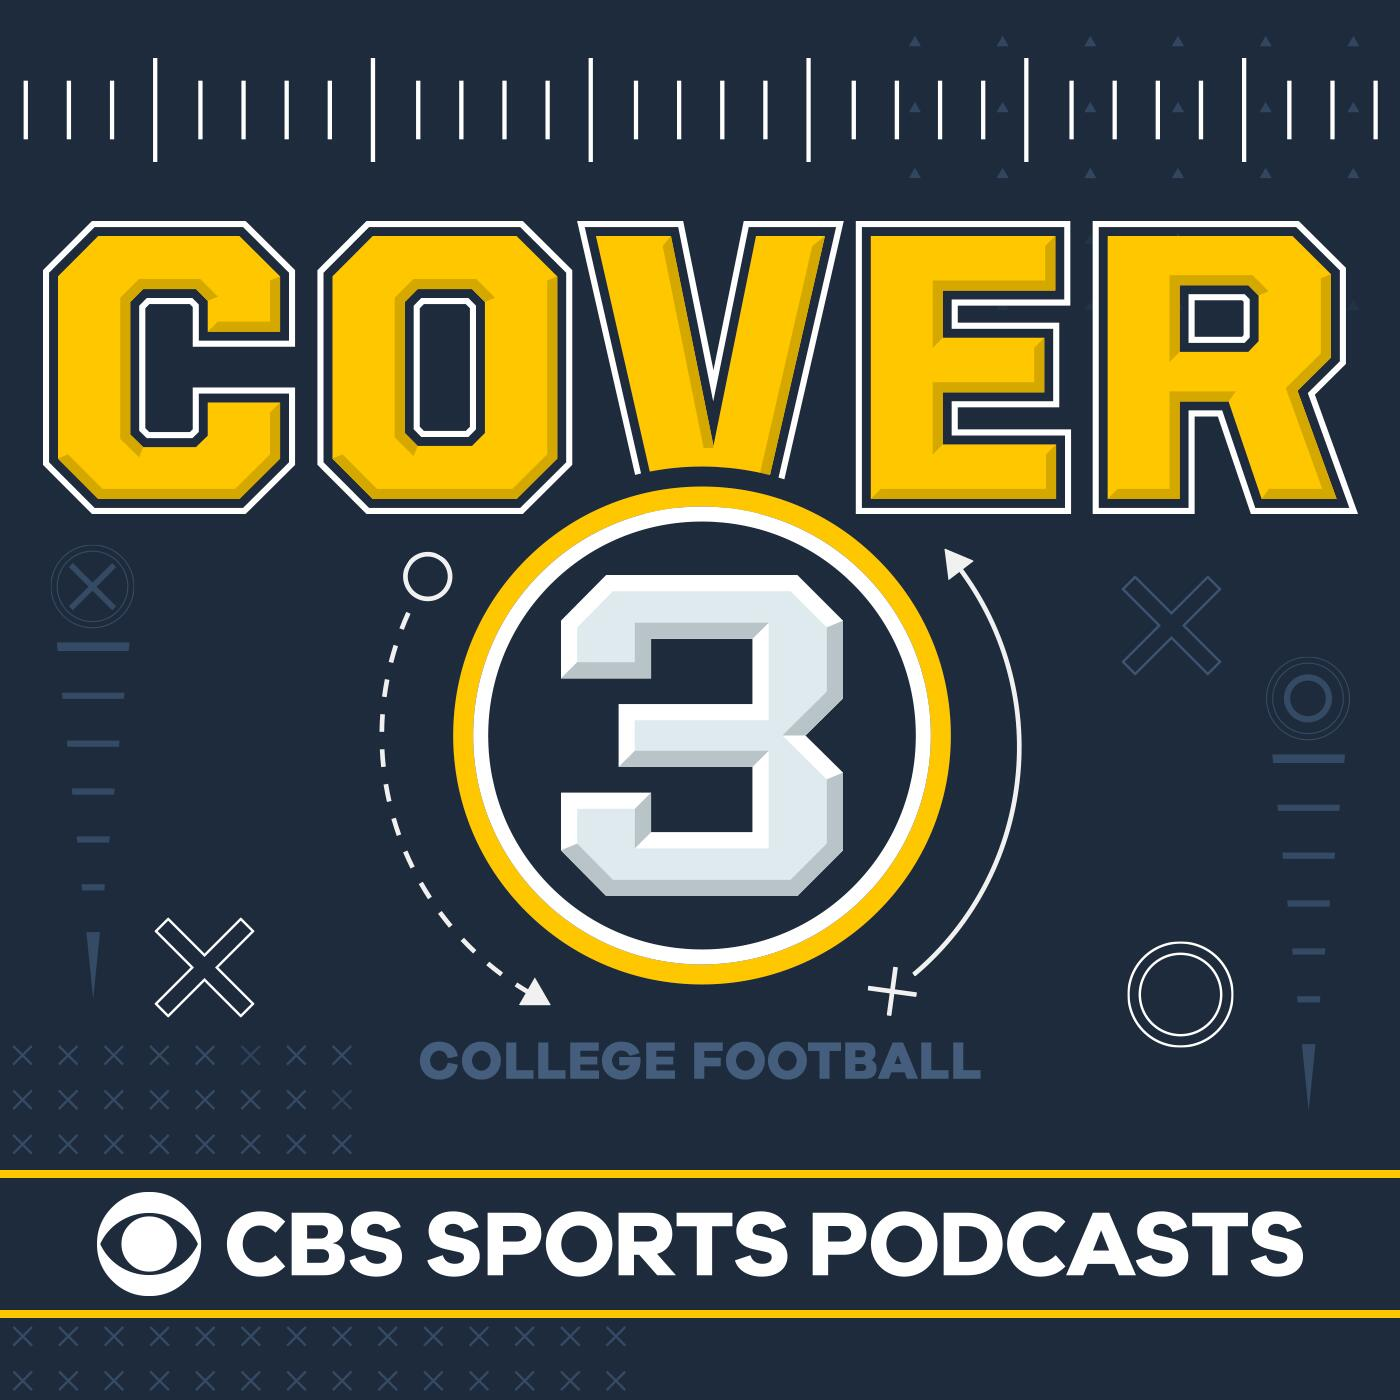 Cover 3 College Football